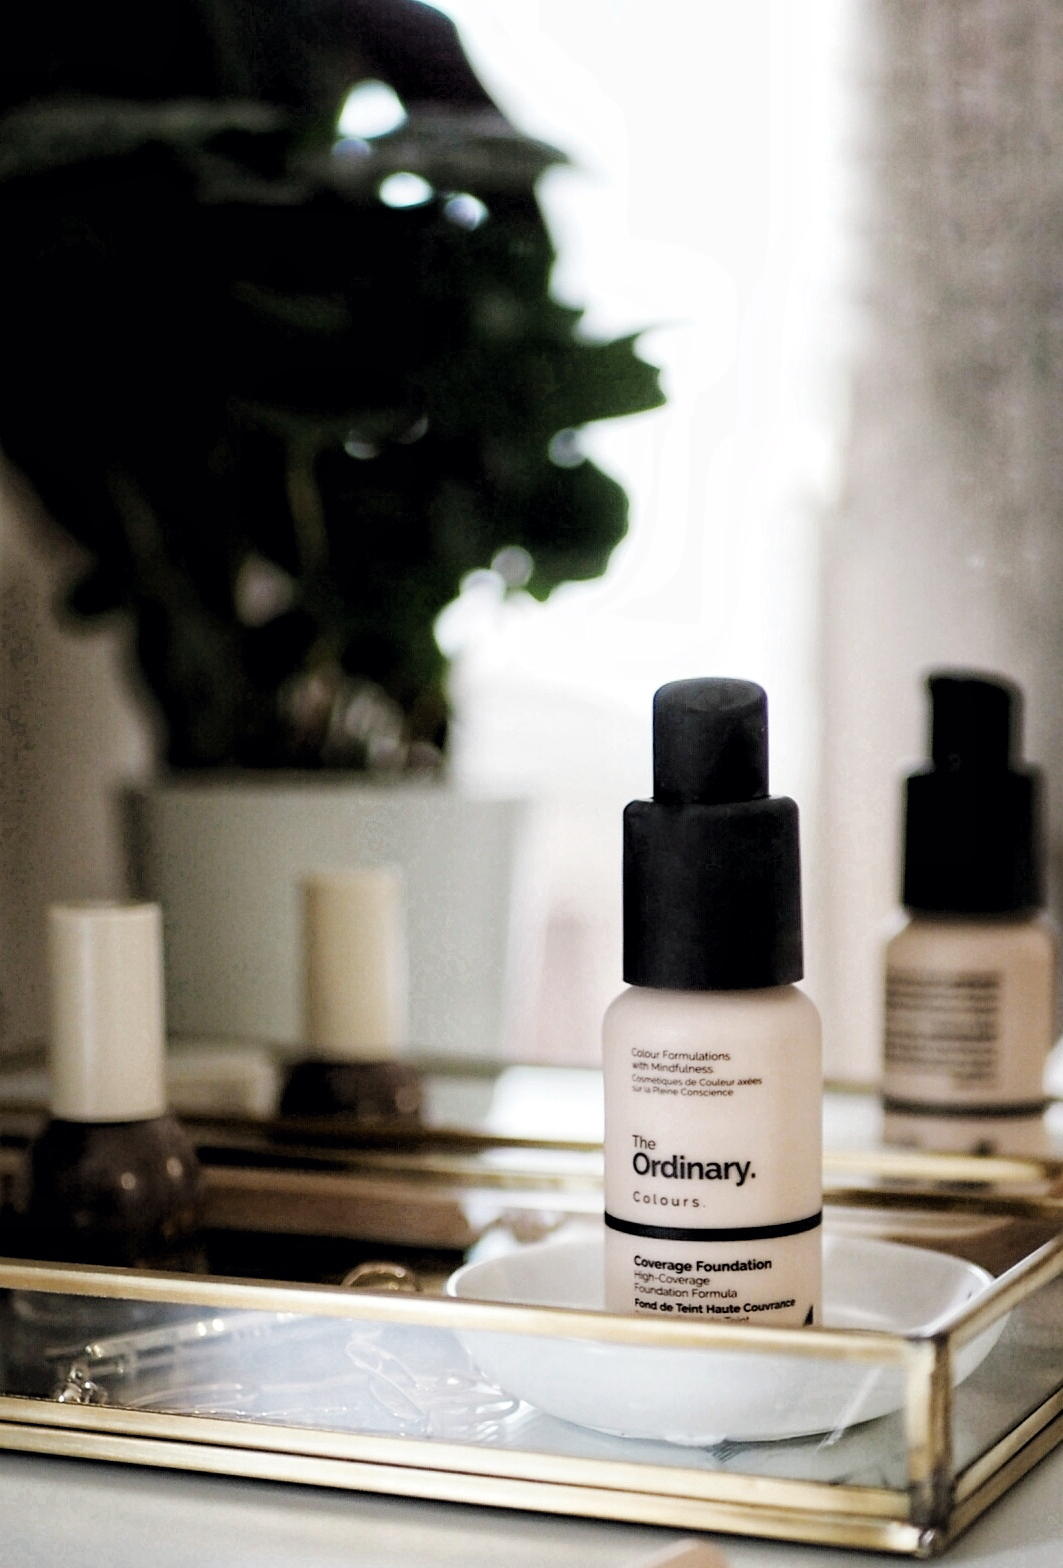 The Most Hyped Foundation Ever? The Ordinary Coverage Review